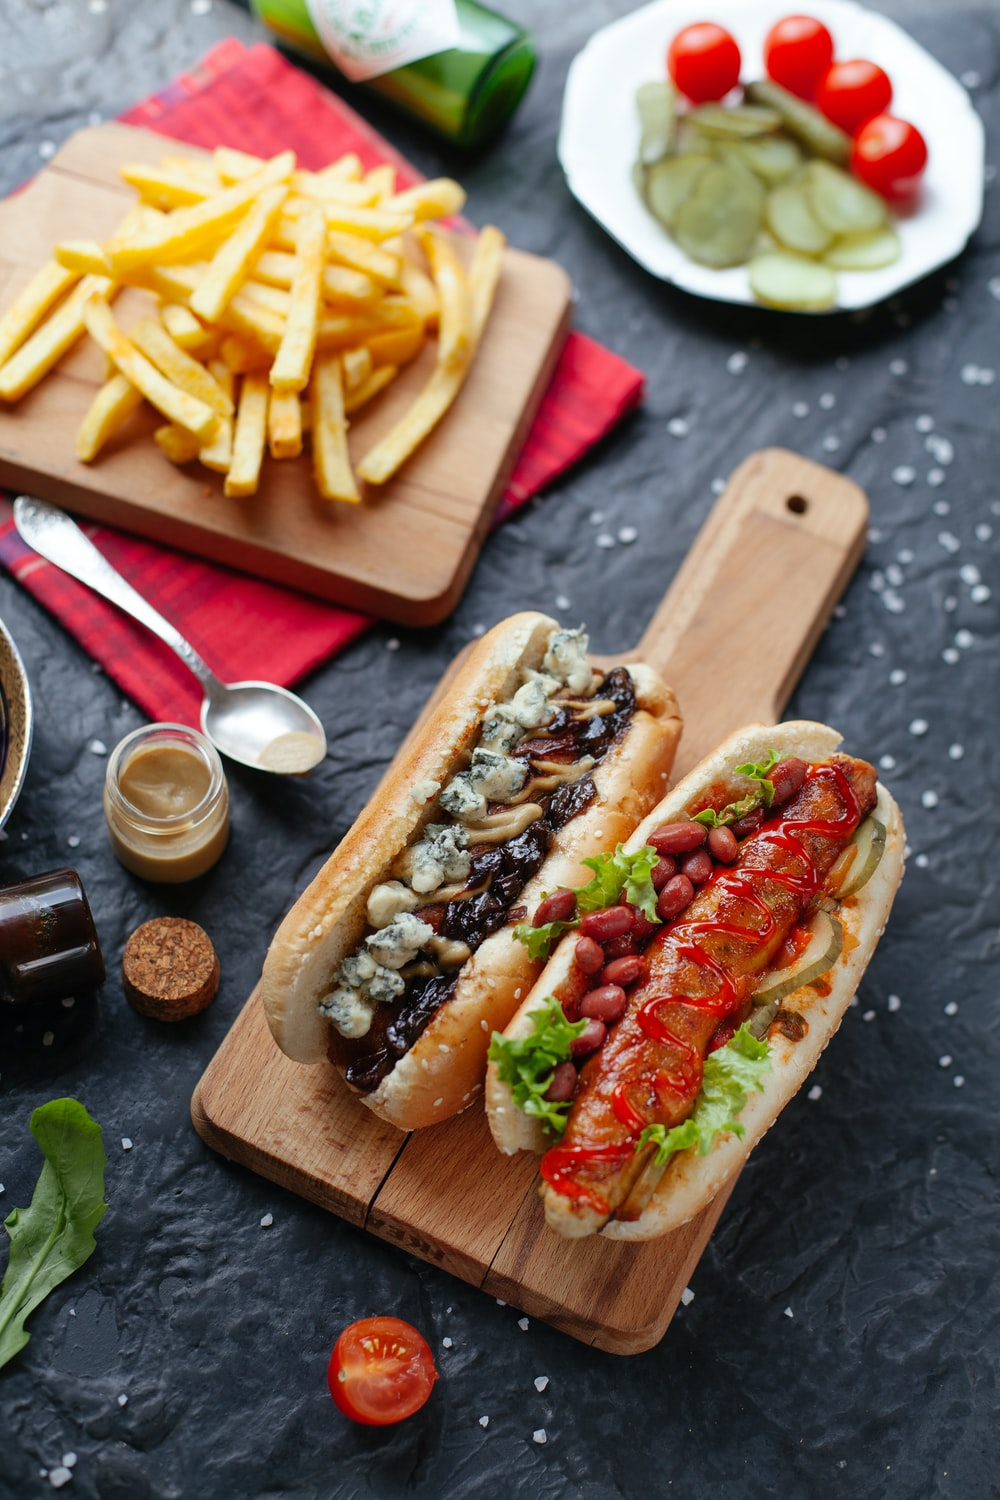 500 Hot Dog Pictures Hd Download Free Images On Unsplash